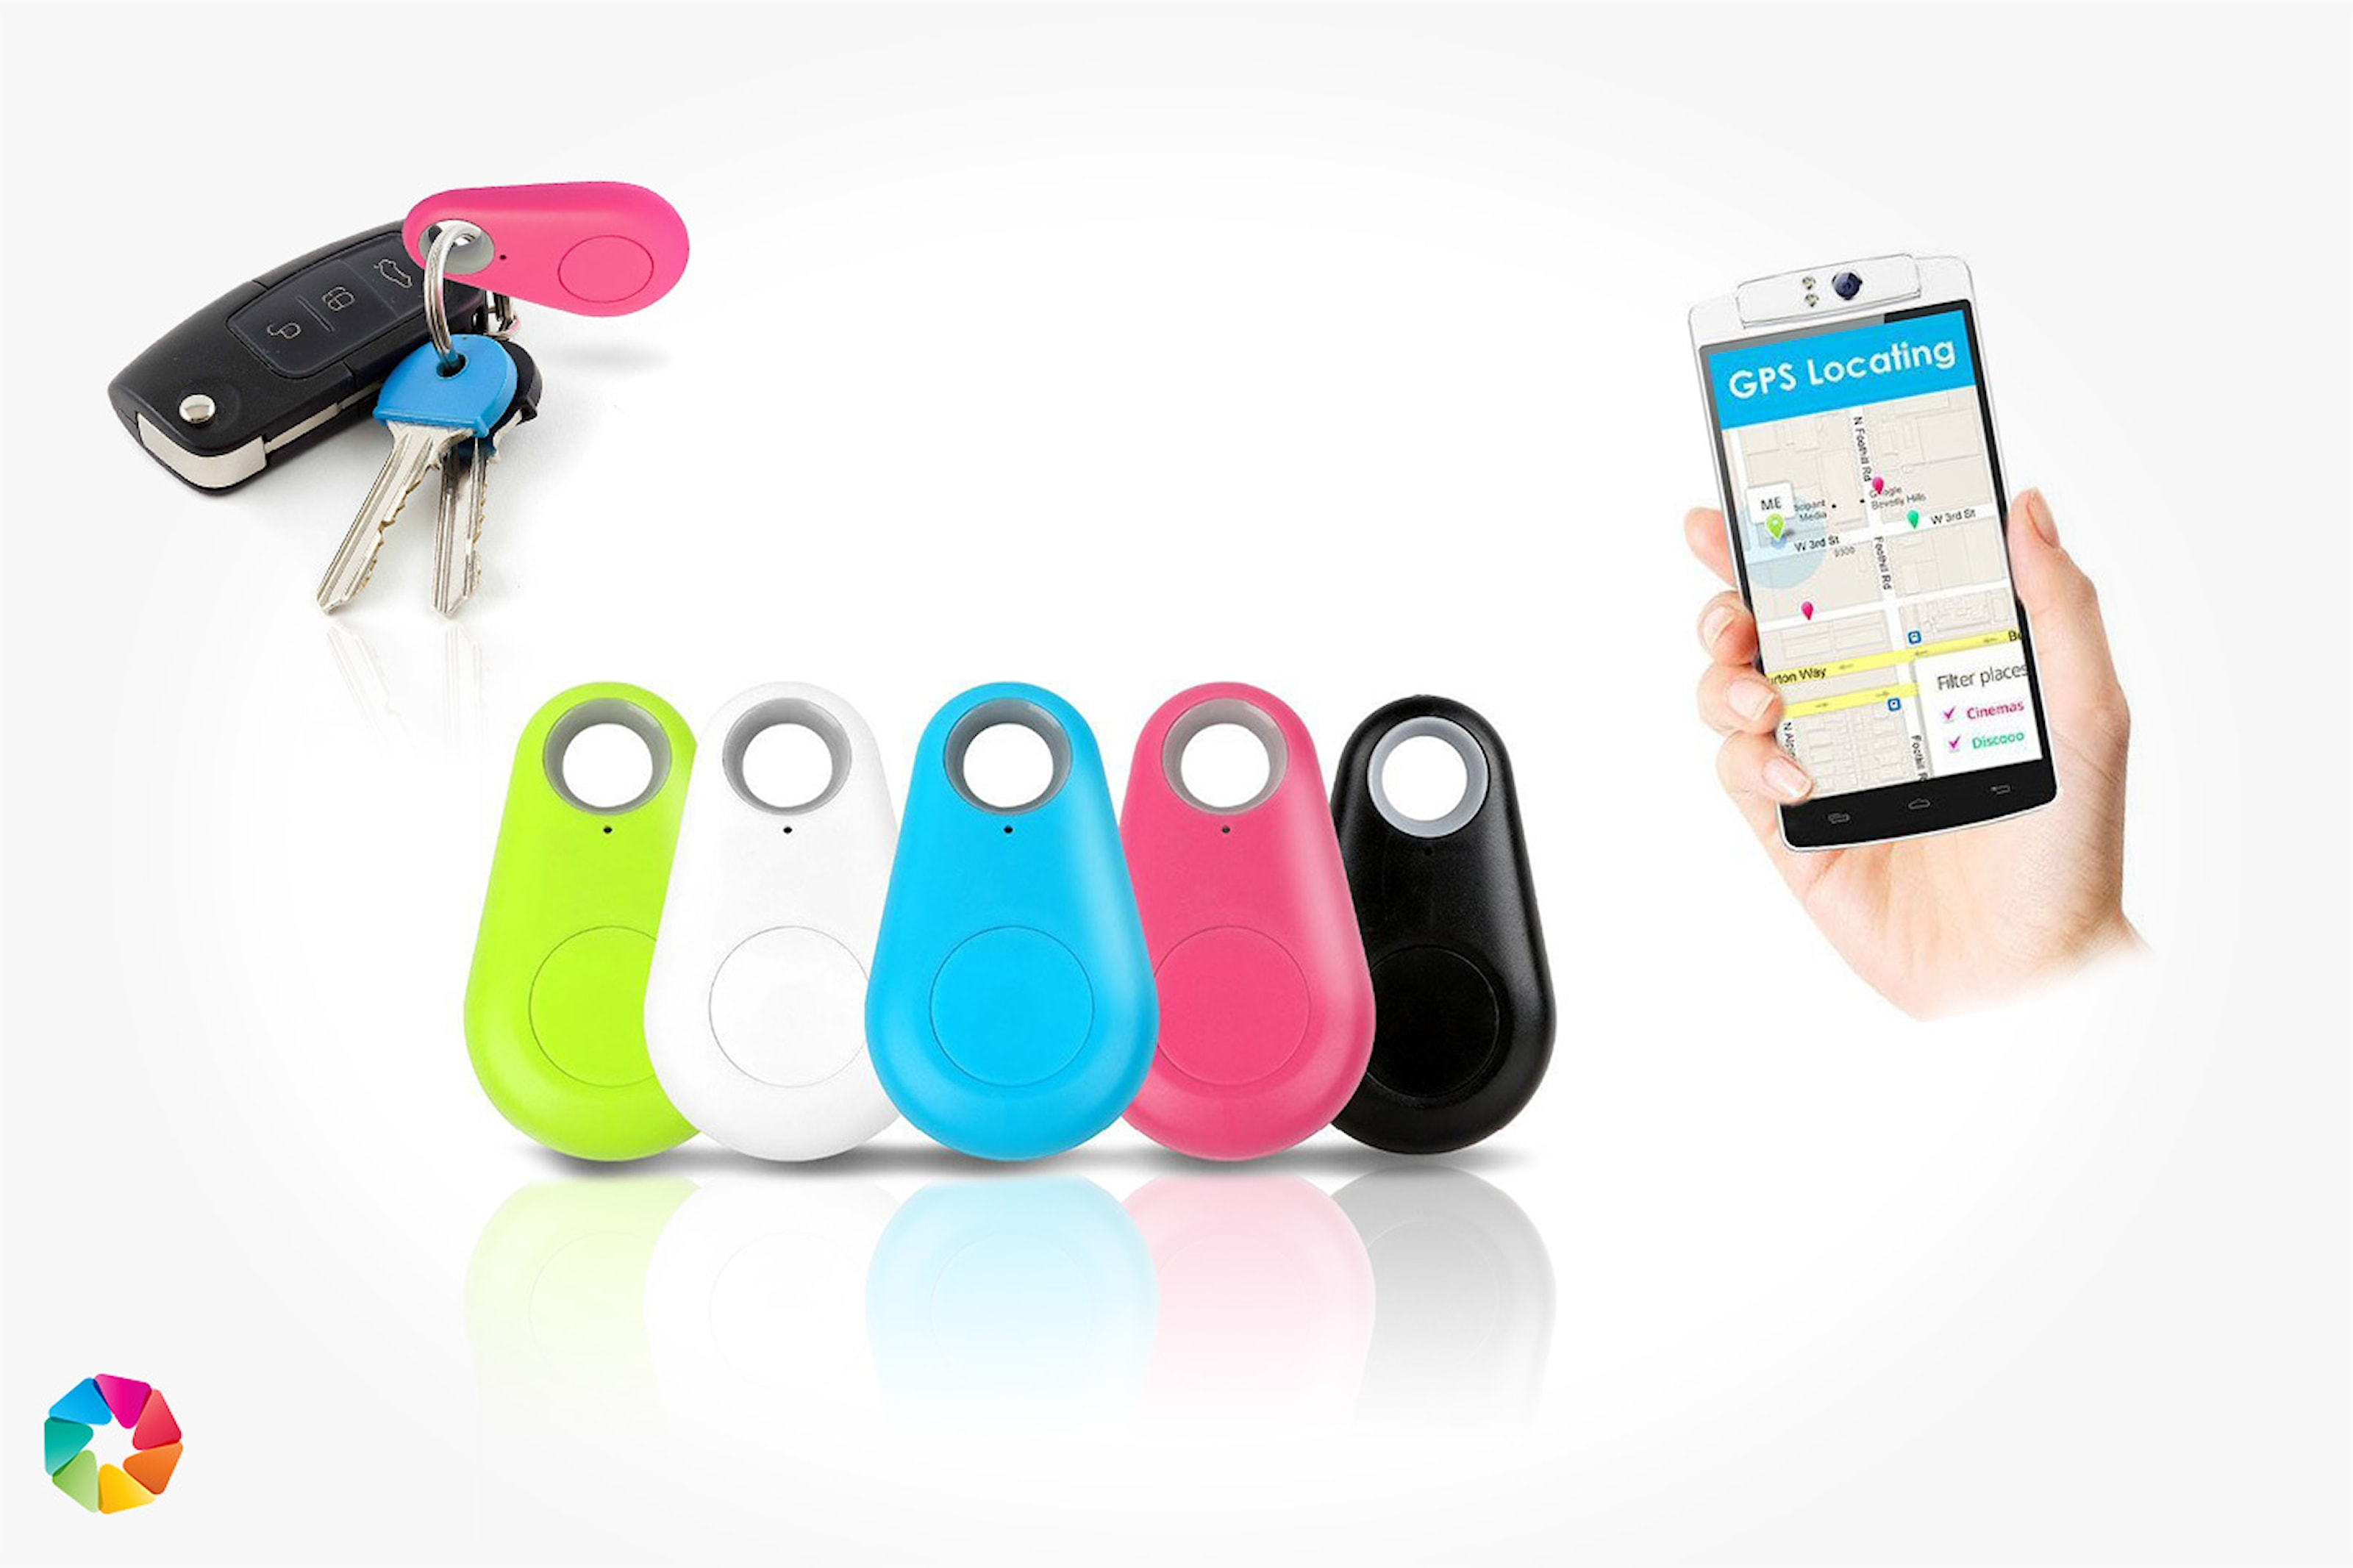 App-styrd Bluetooth-tracker